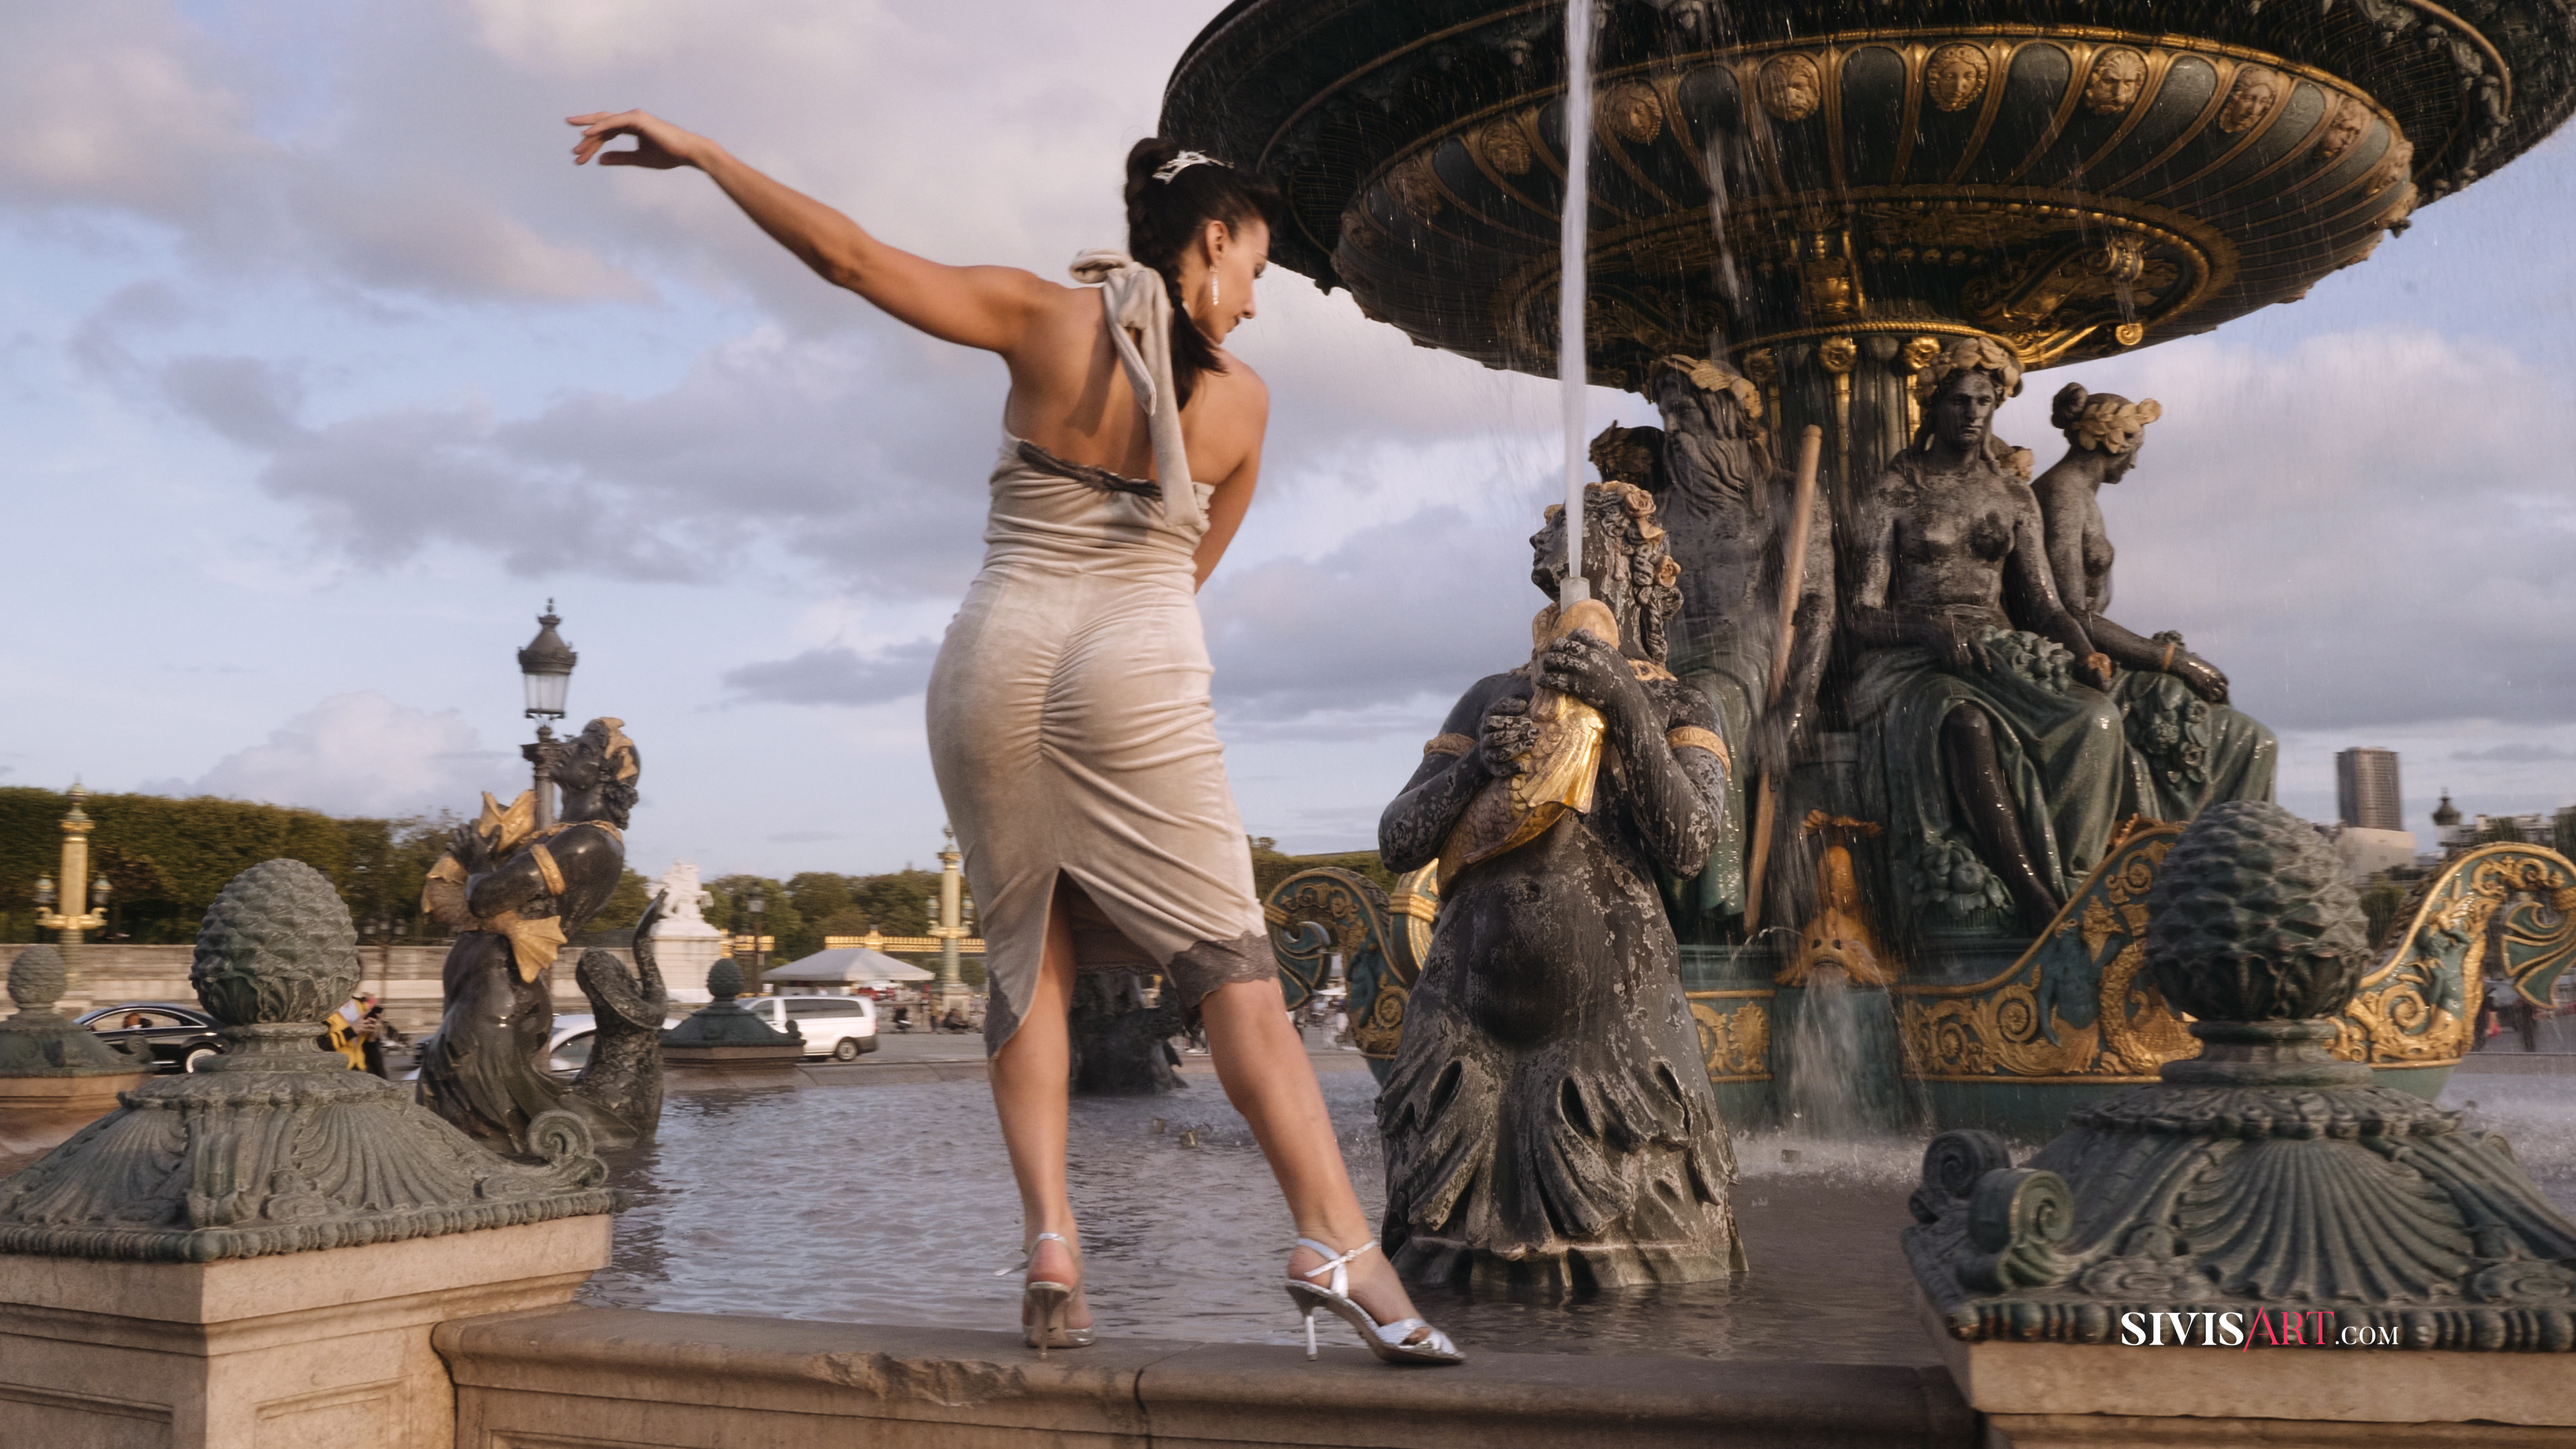 Sivis'art Videomaker presents A tango week-end in Paris